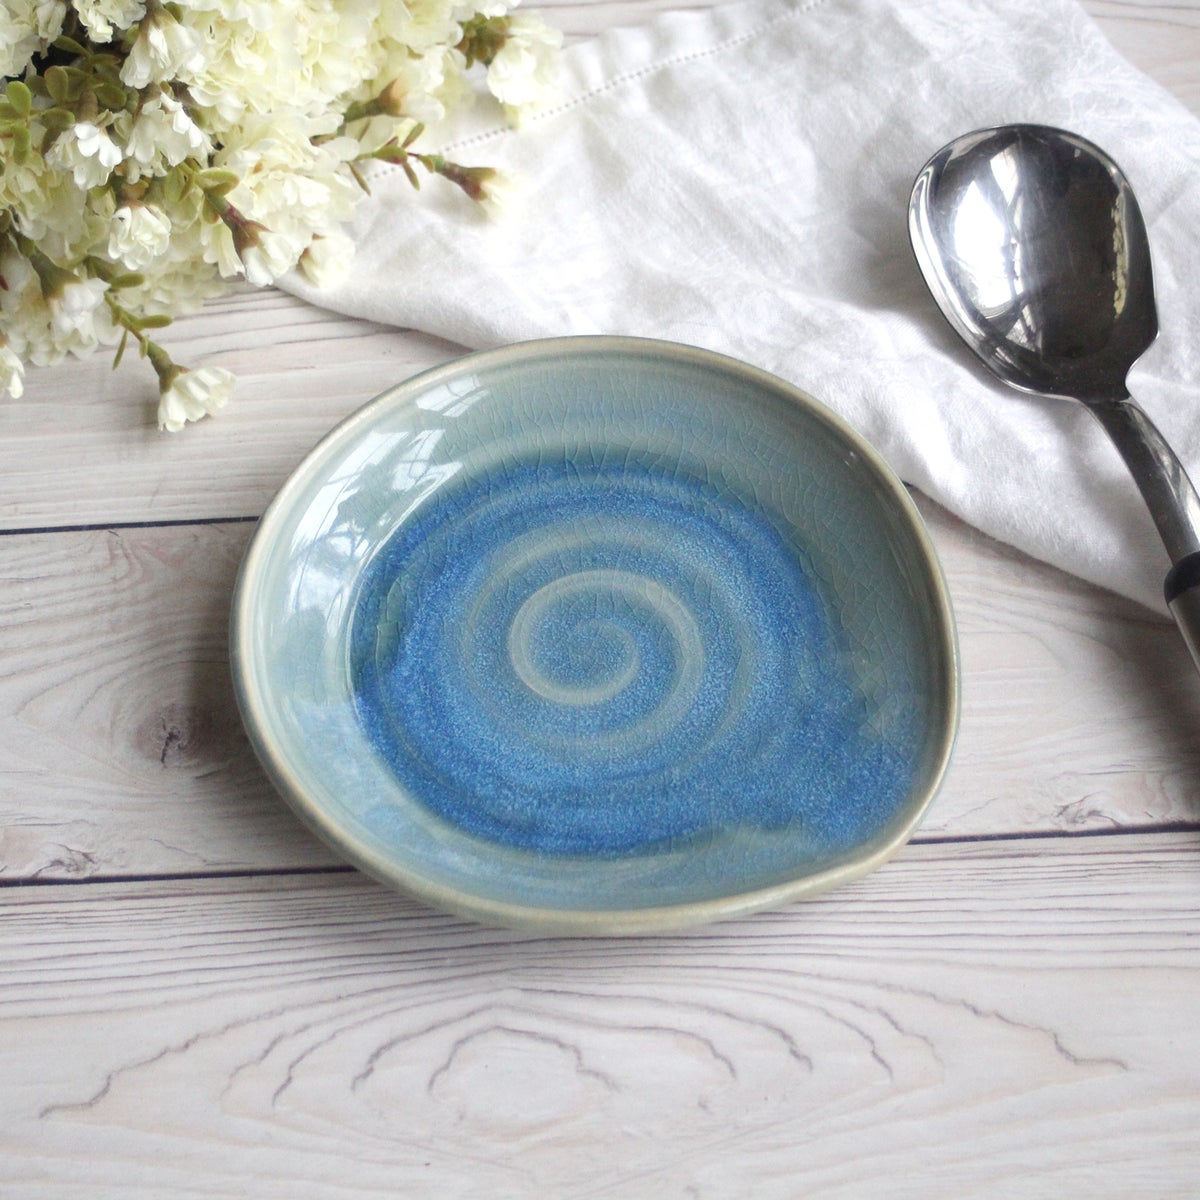 Andover Pottery Large Spoon Rest In Sea Glass Blue Glaze